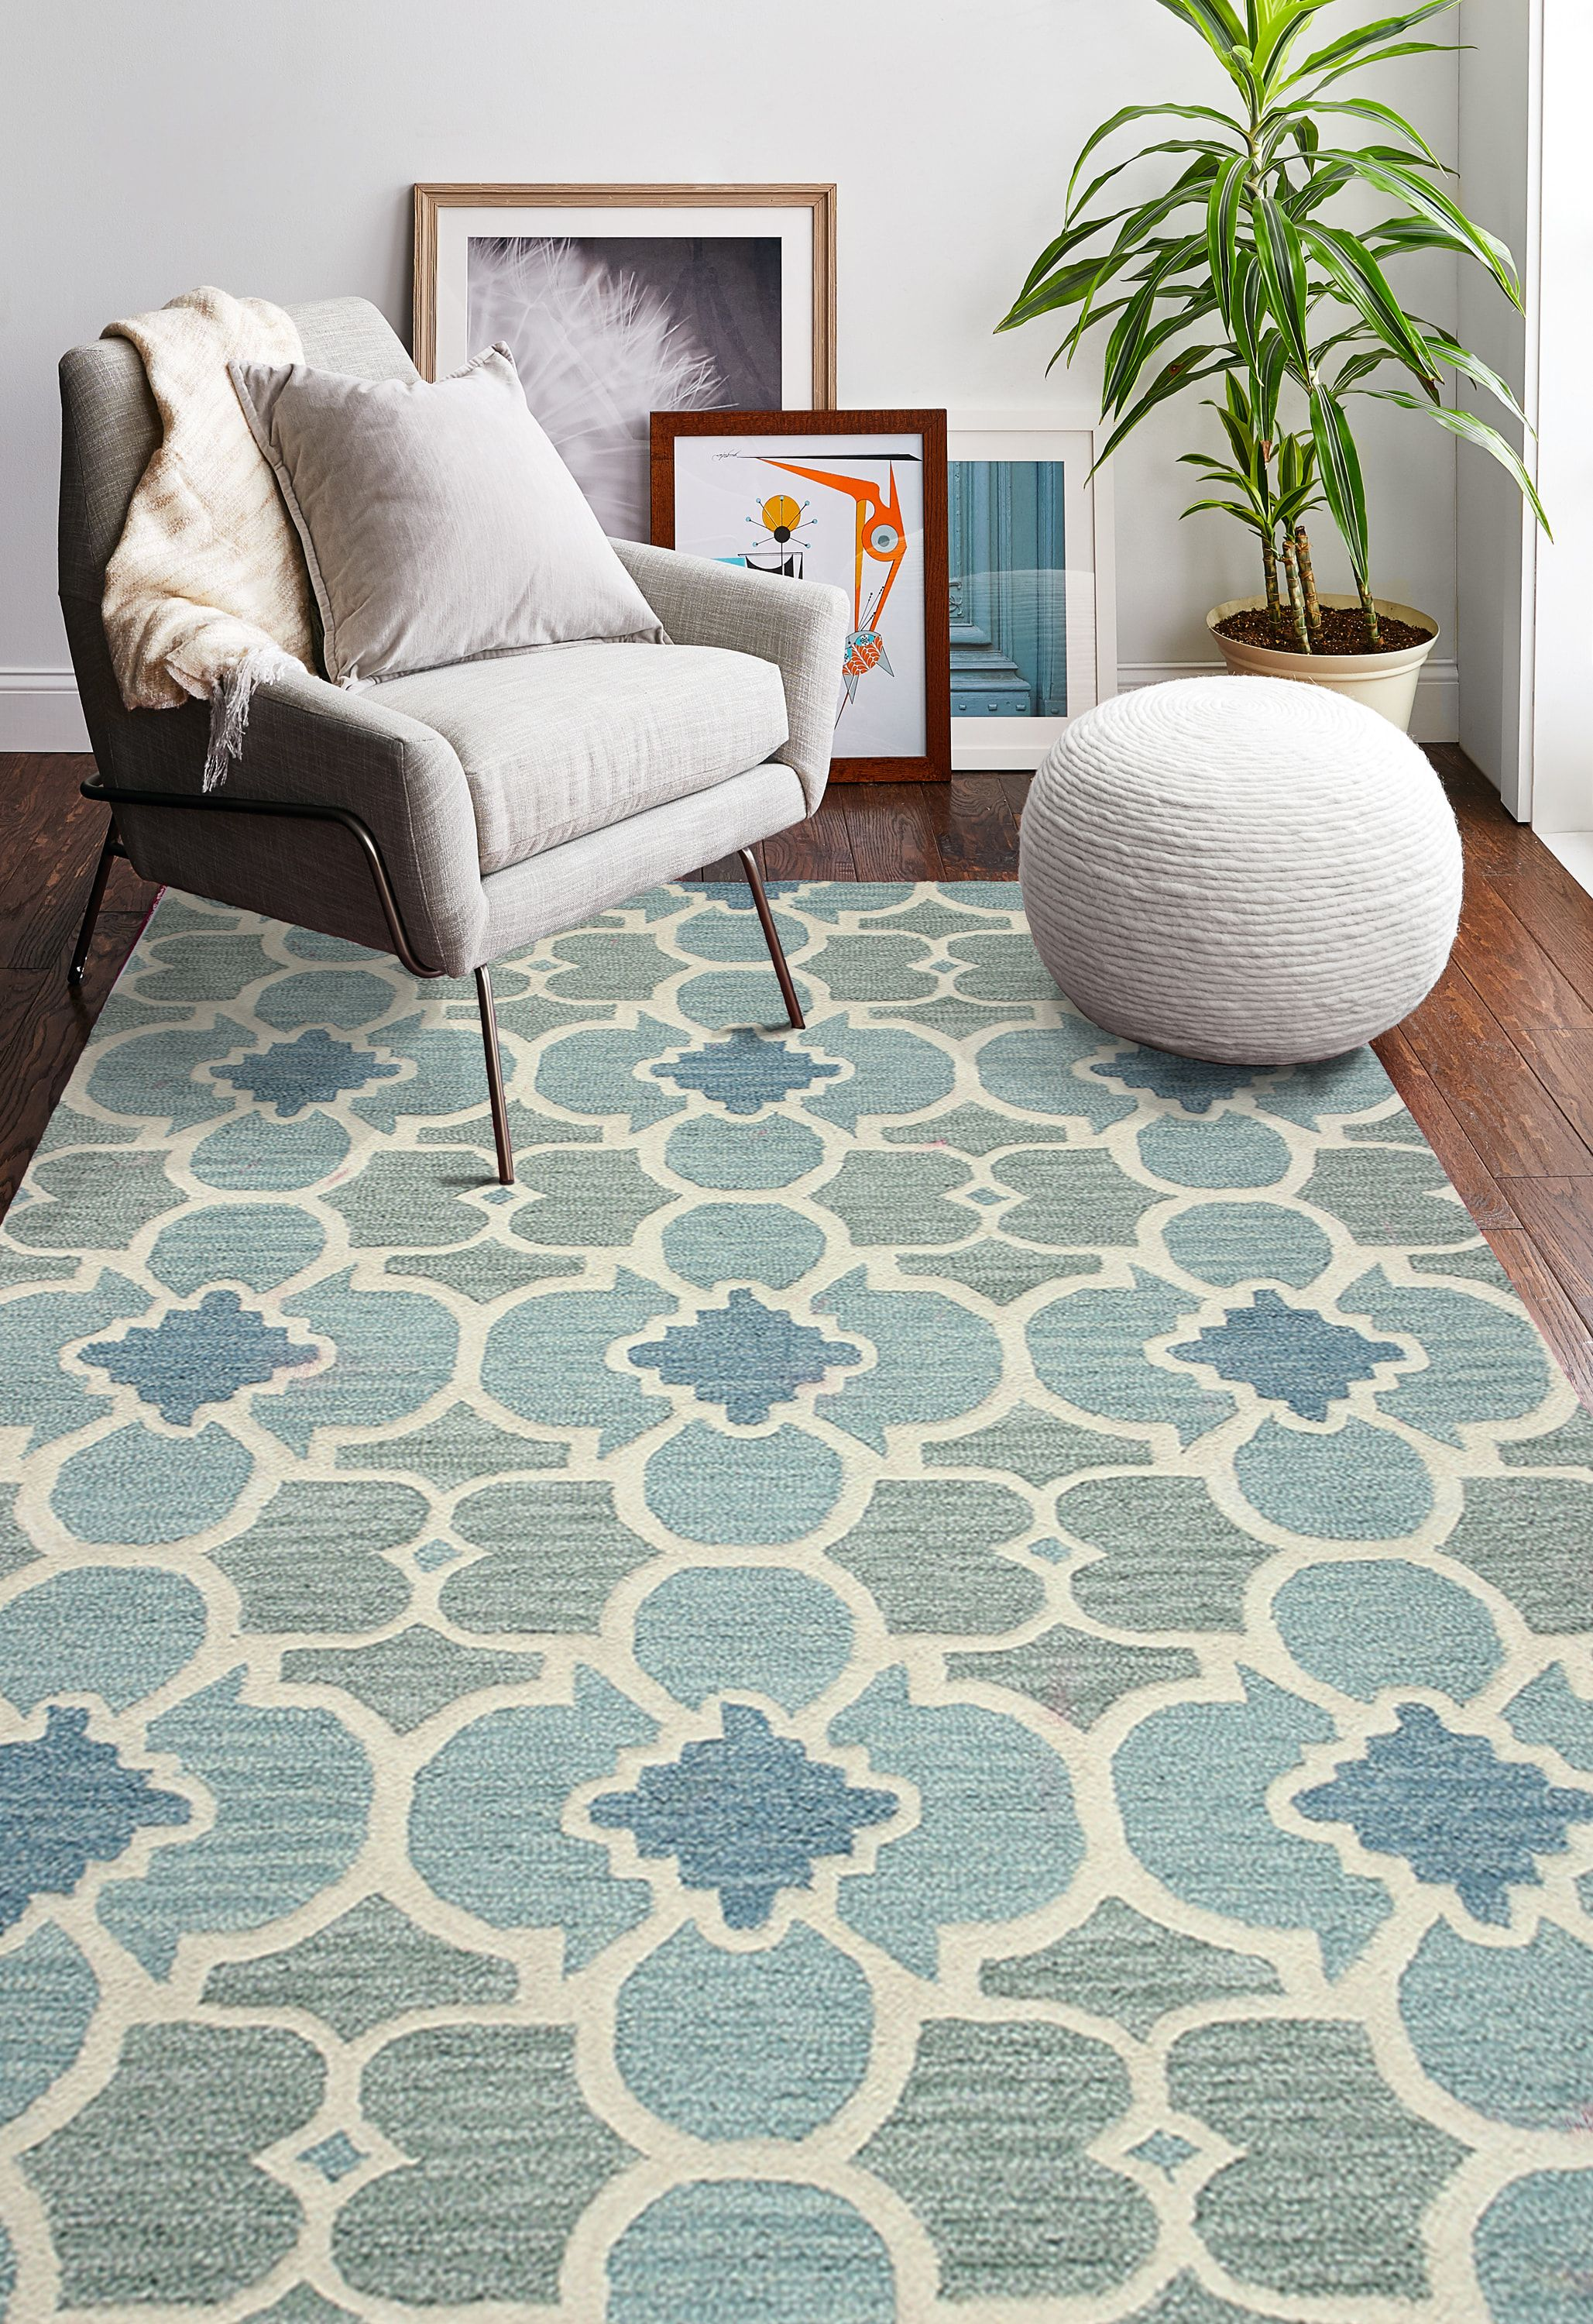 Pin On Living Room Decor Inspiration #soothing #colors #for #living #room